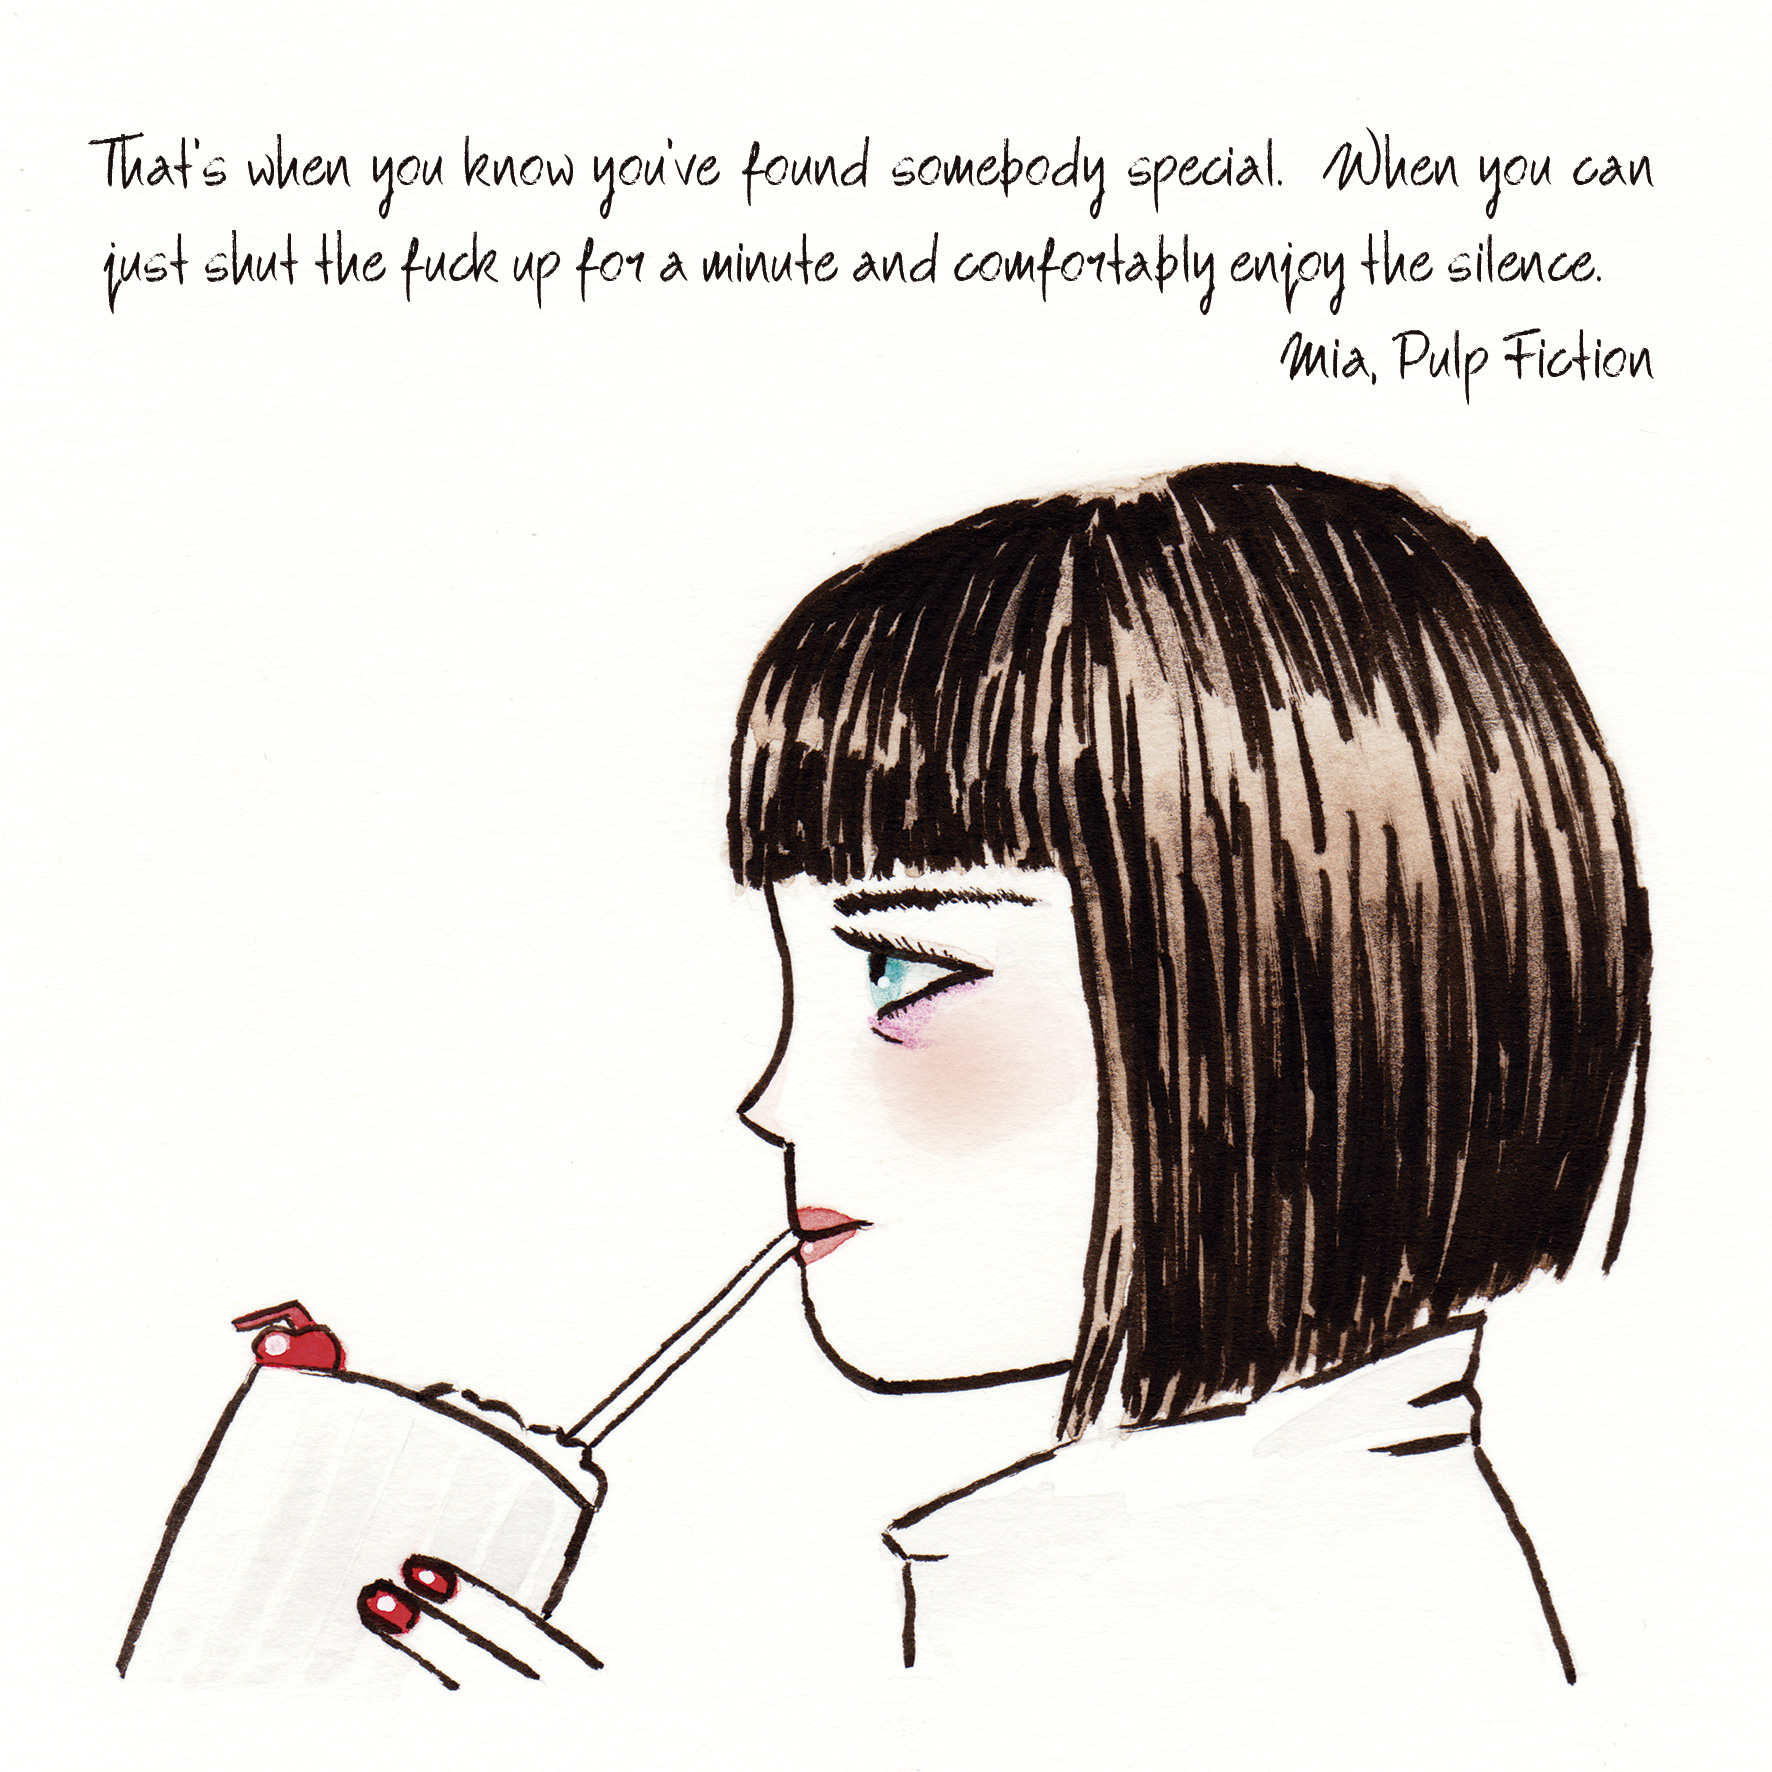 Illustrated quote form the movie Pul Fiction.